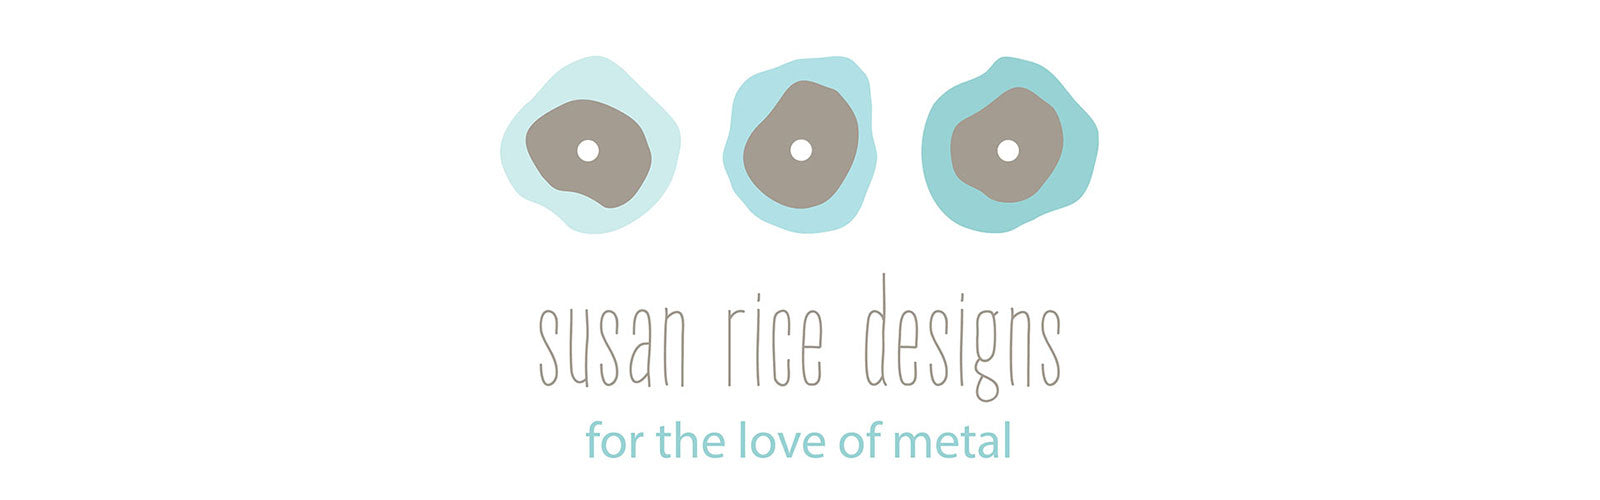 ­What Happened to Susan Rice Designs?